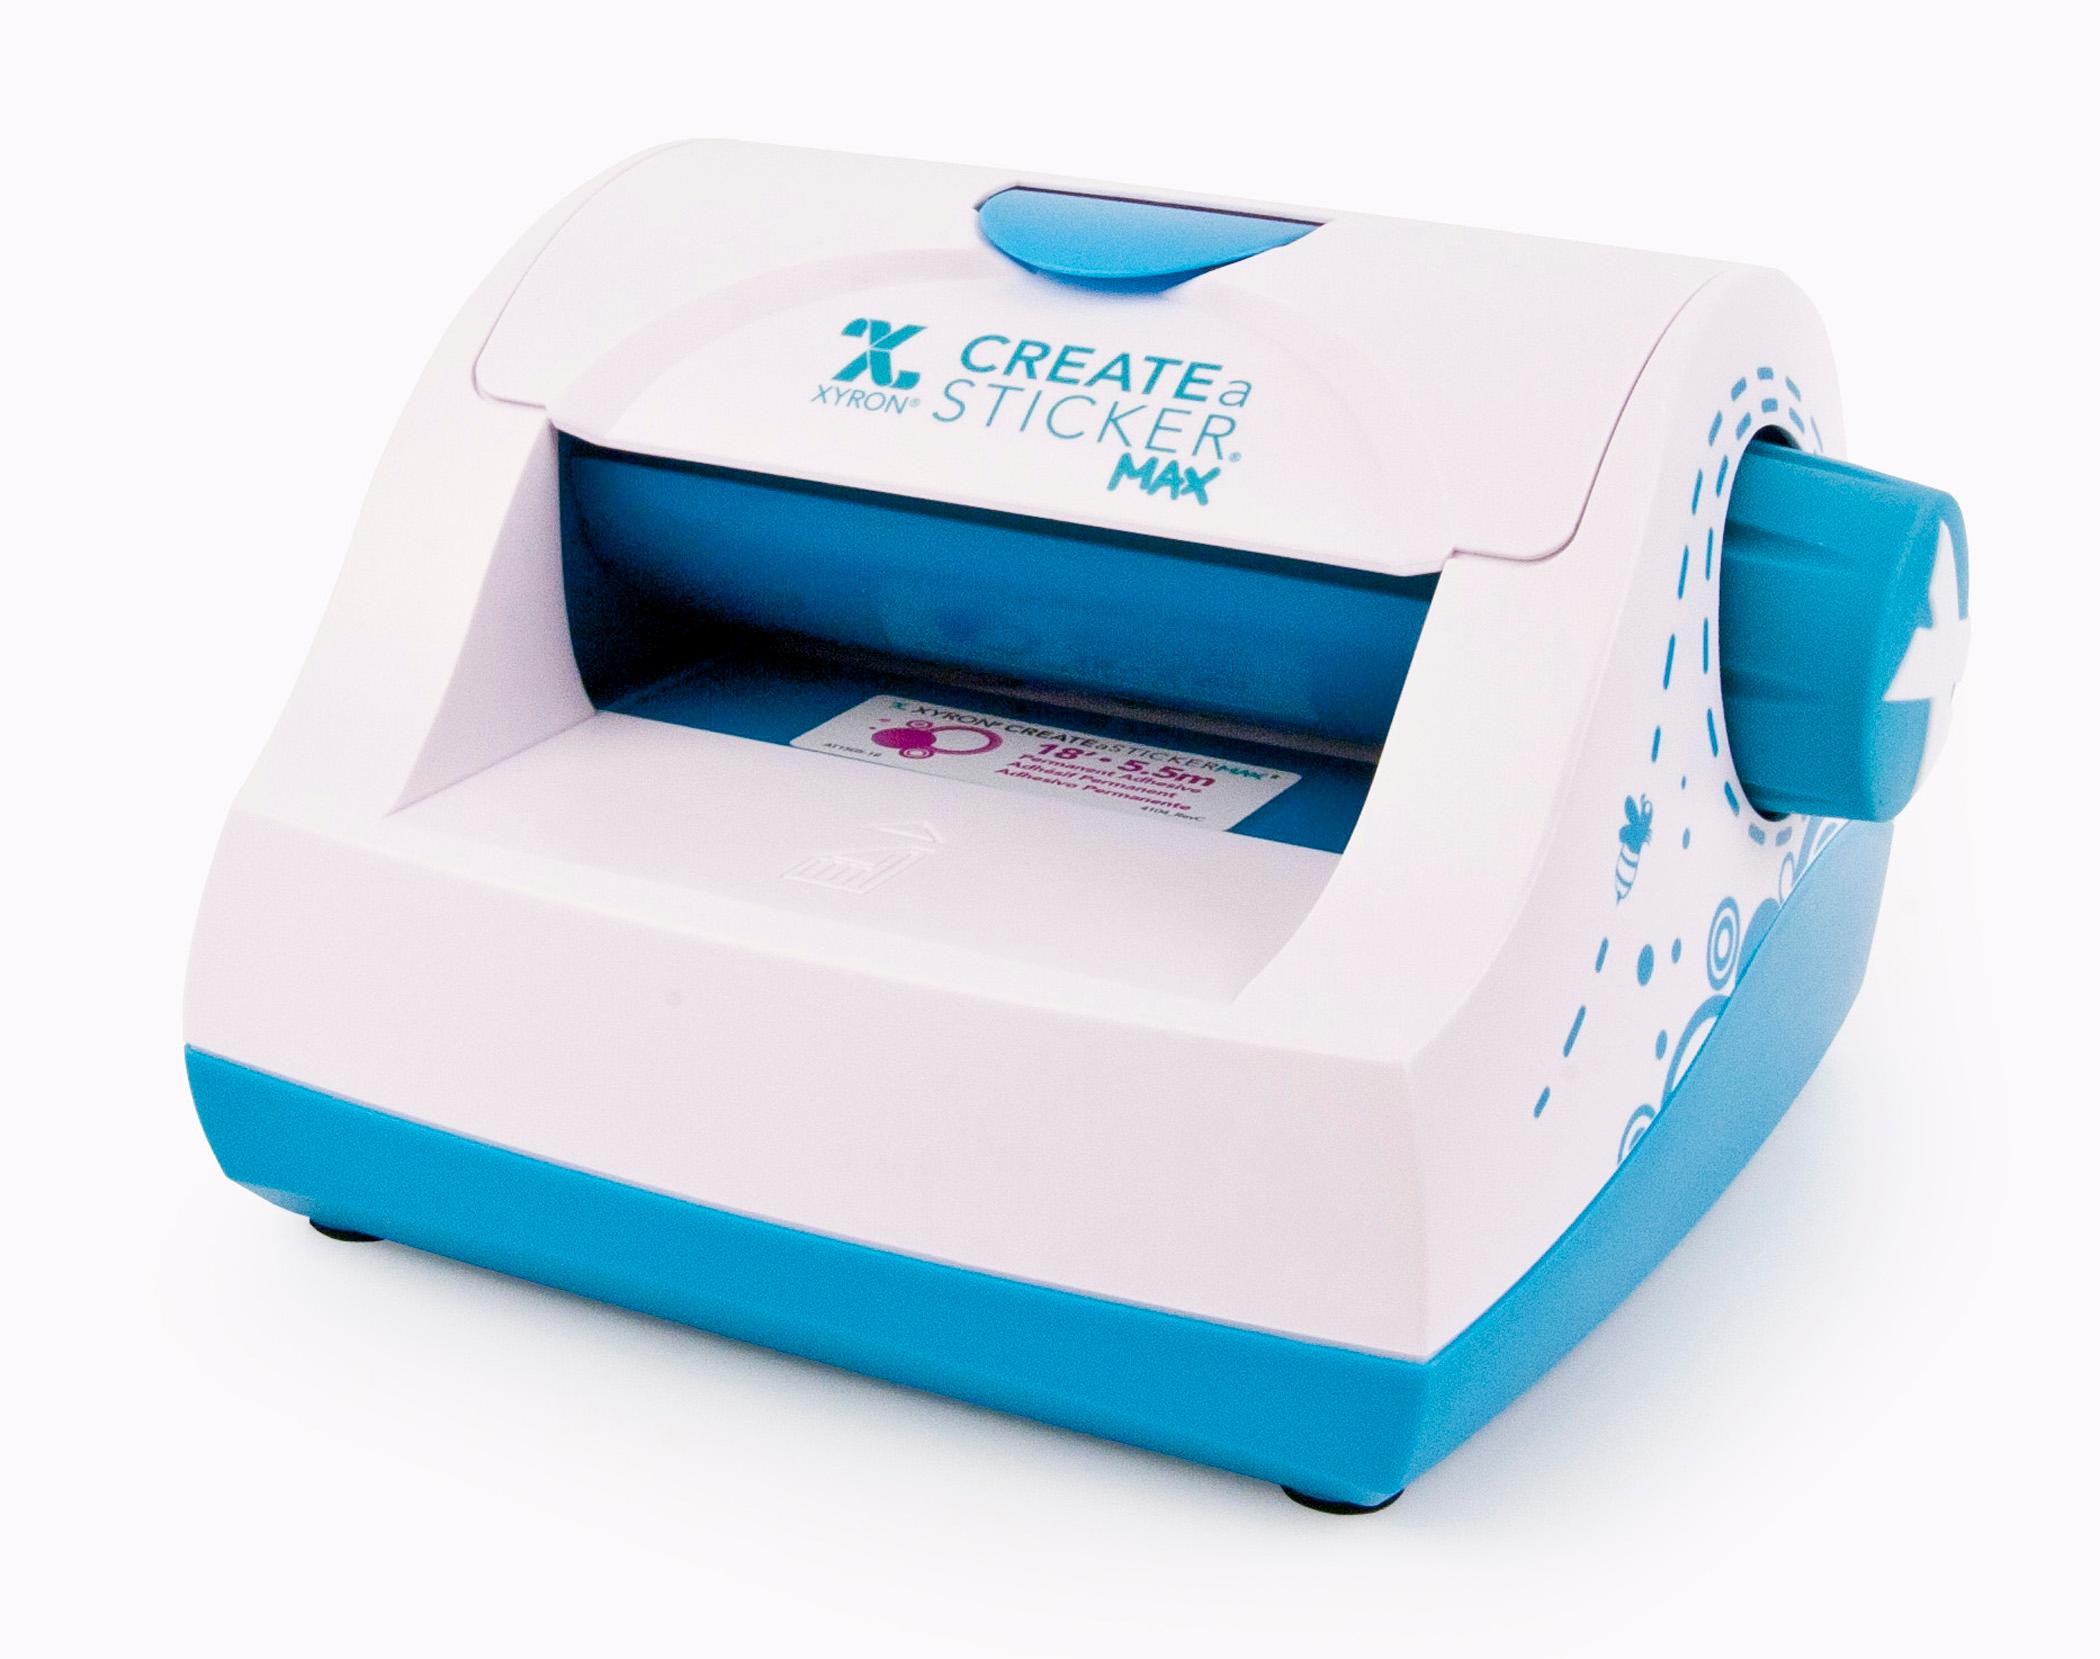 Xyron XRN M quina Create a Sticker para hacer cal an as 5